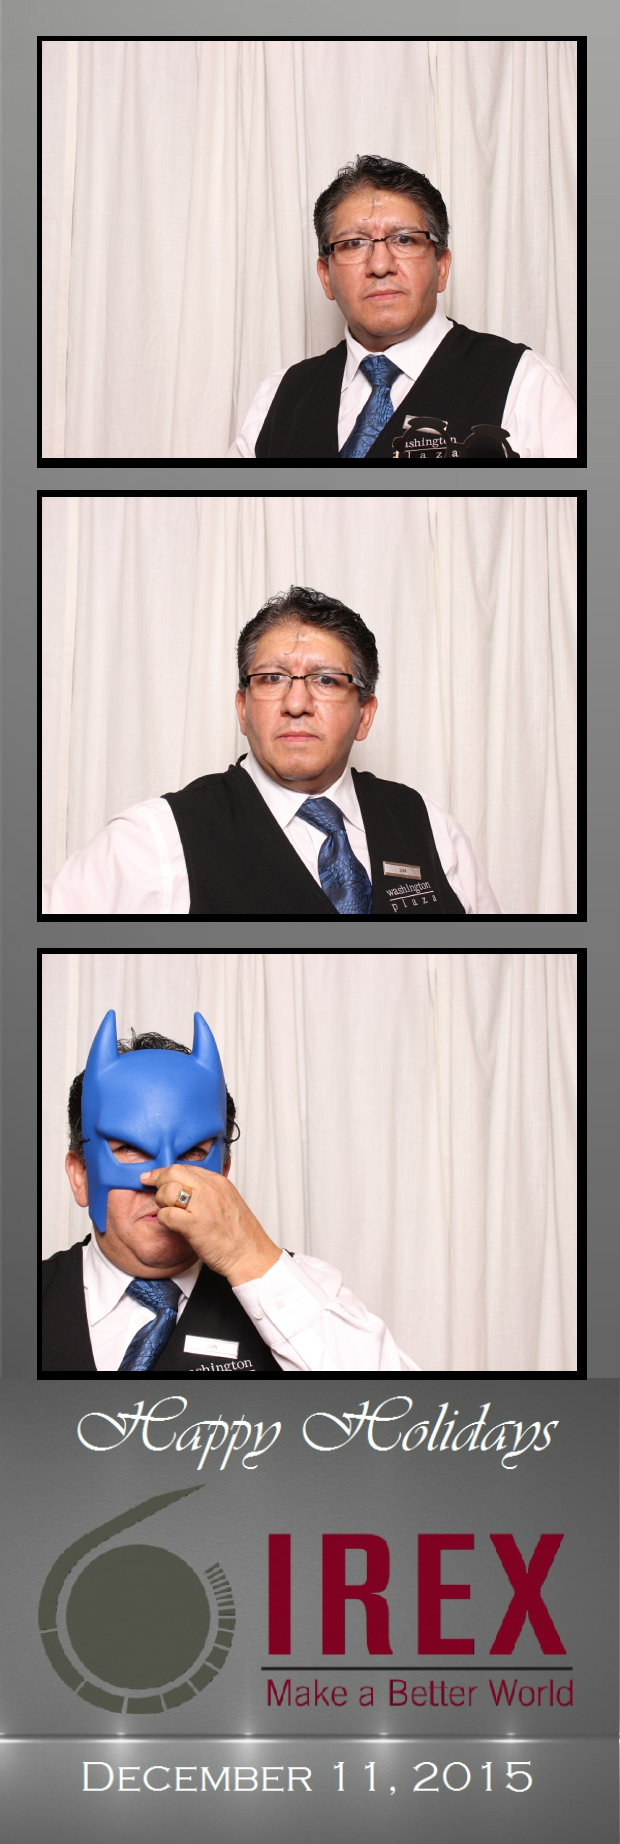 Guest House Events Photo Booth Strips IREX (4).jpg